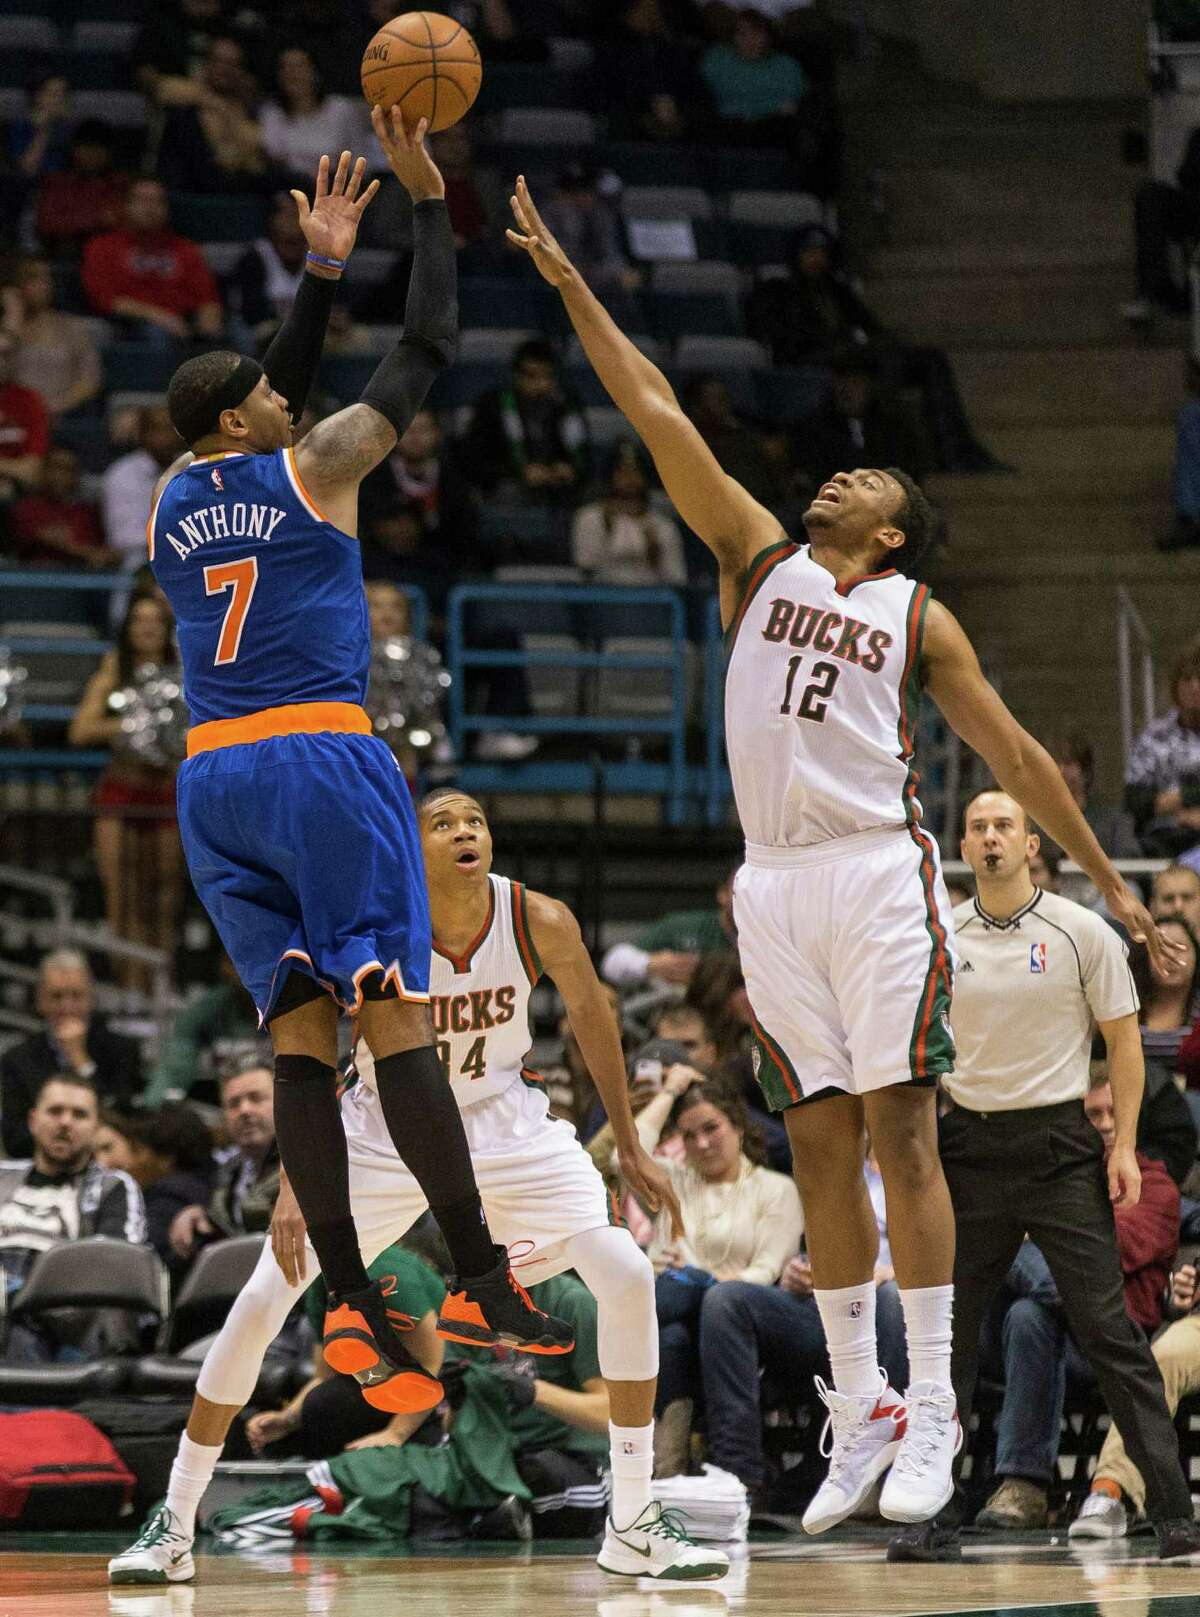 New York Knicks' Carmelo Anthony shoots over Milwaukee Bucks' Jabari Parker during the second half of an NBA basketball game Tuesday, Nov. 18, 2014, in Milwaukee. (AP Photo/Tom Lynn) ORG XMIT: WITL107